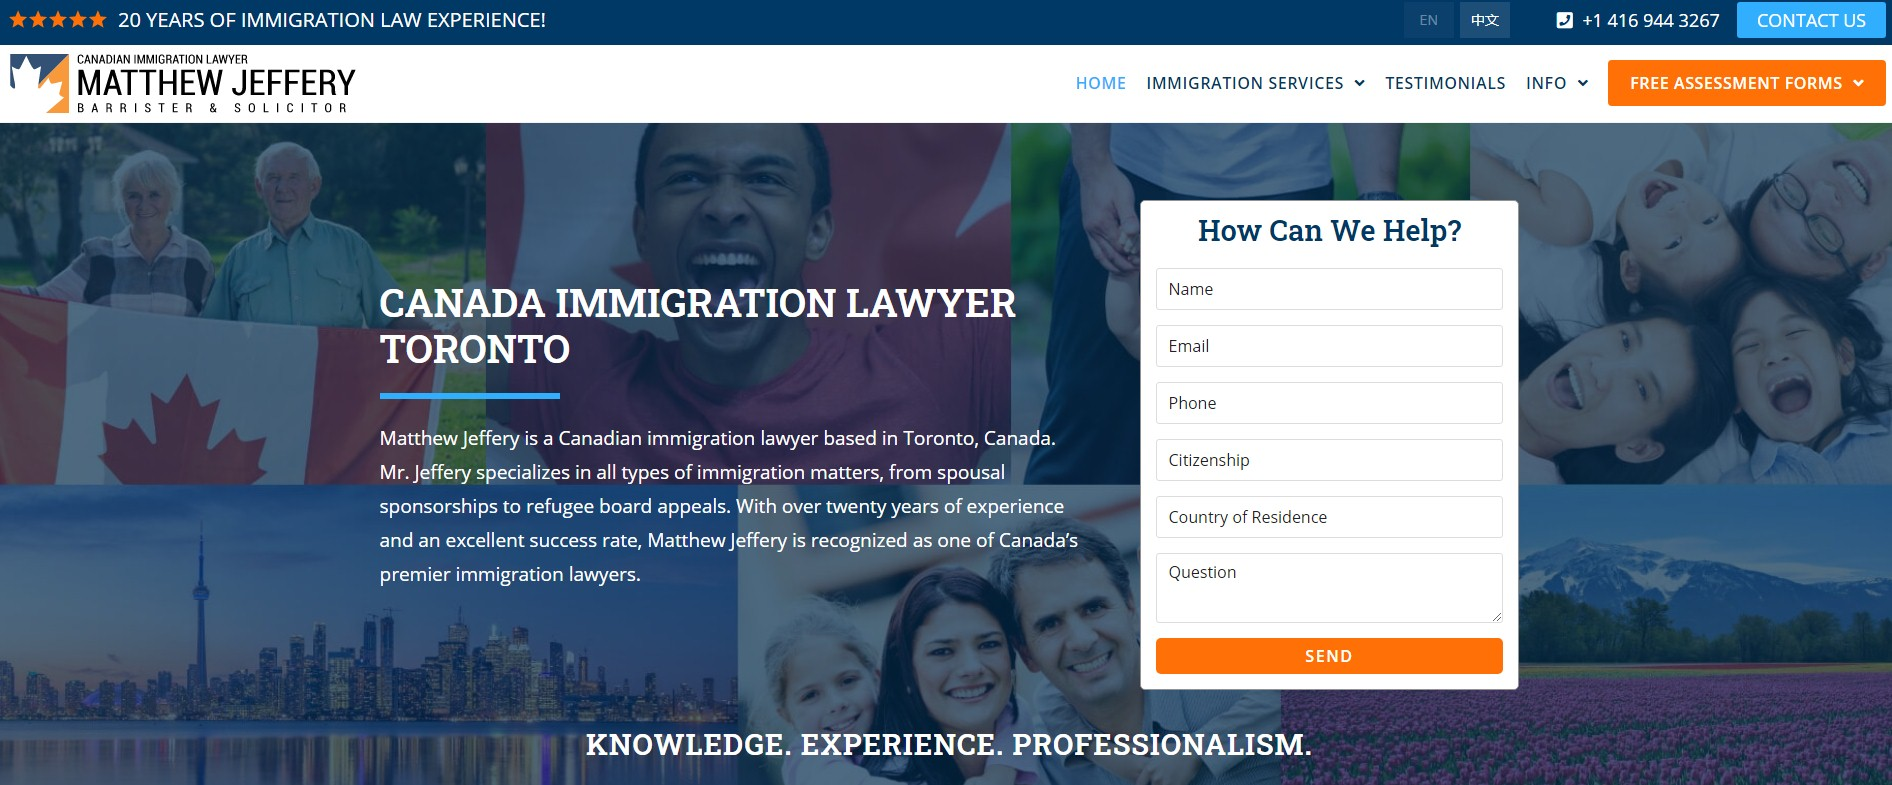 Canadian immigration lawyer based in Toronto